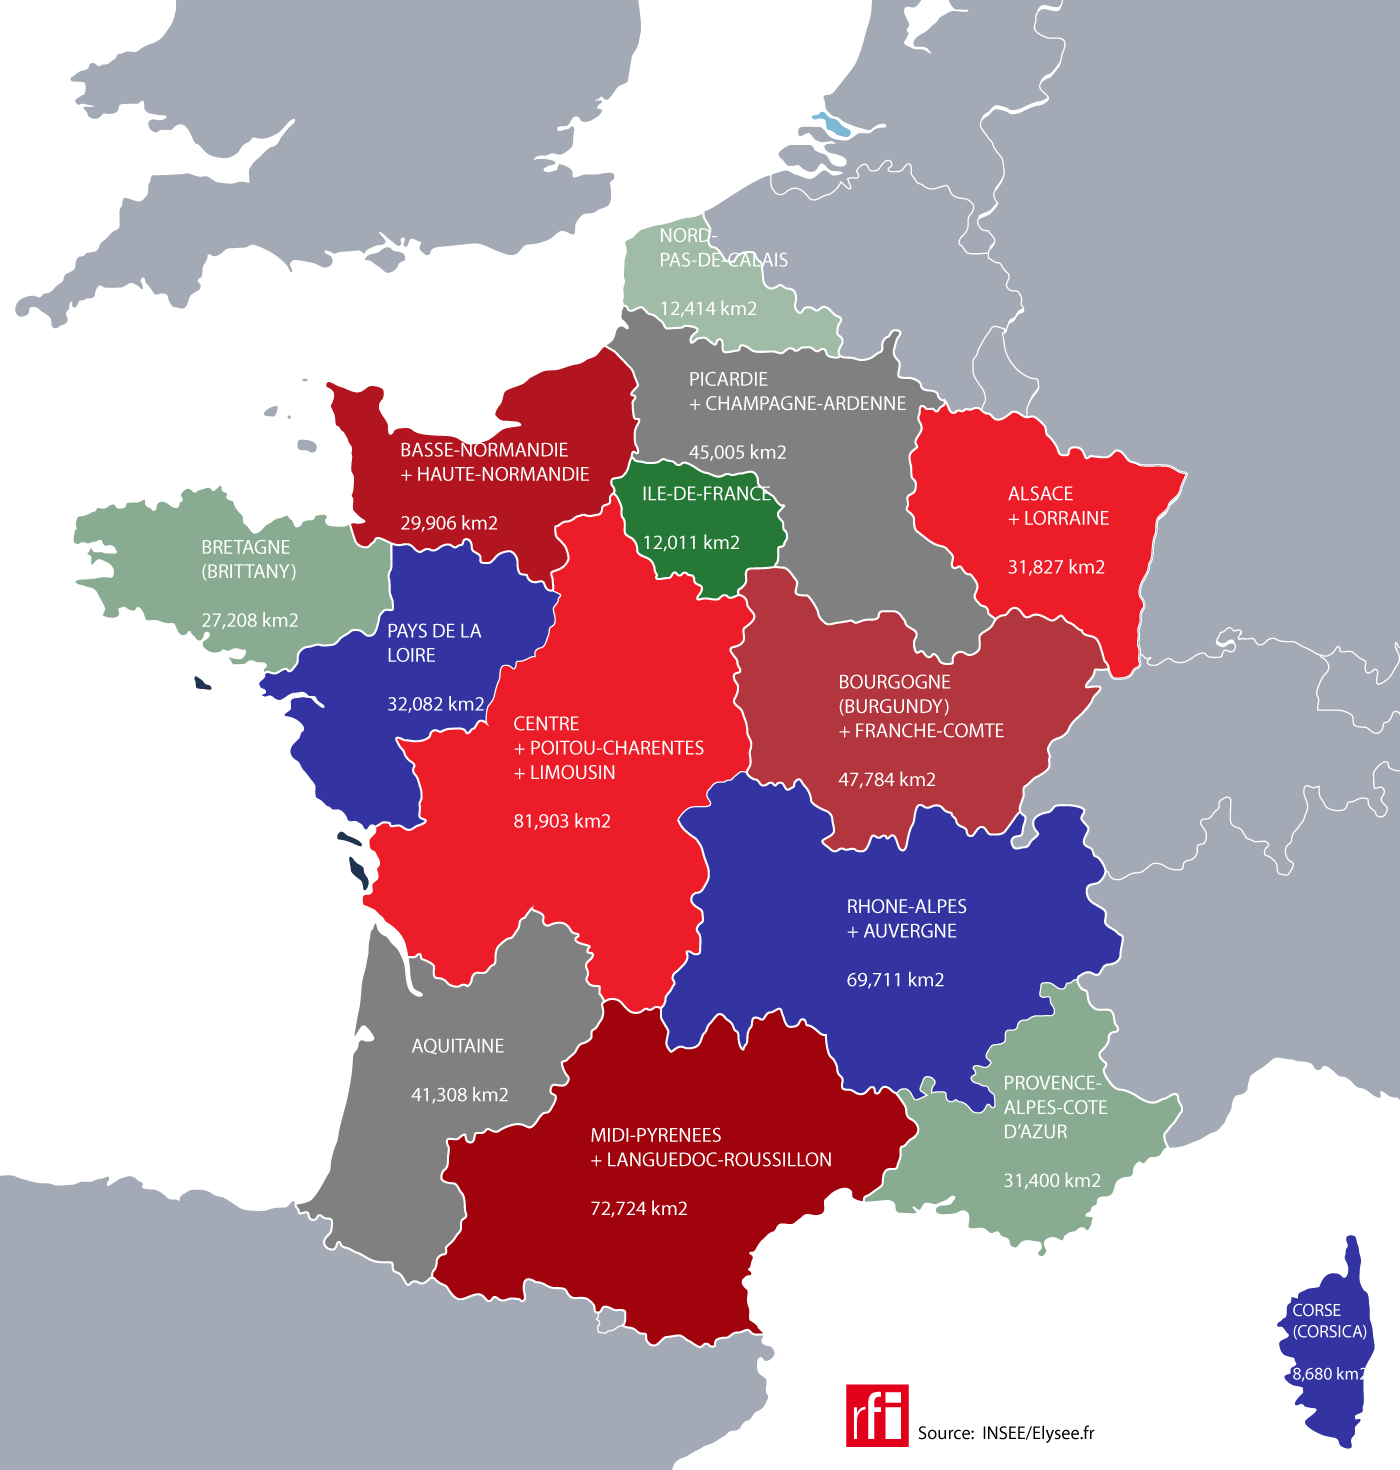 The new French regions